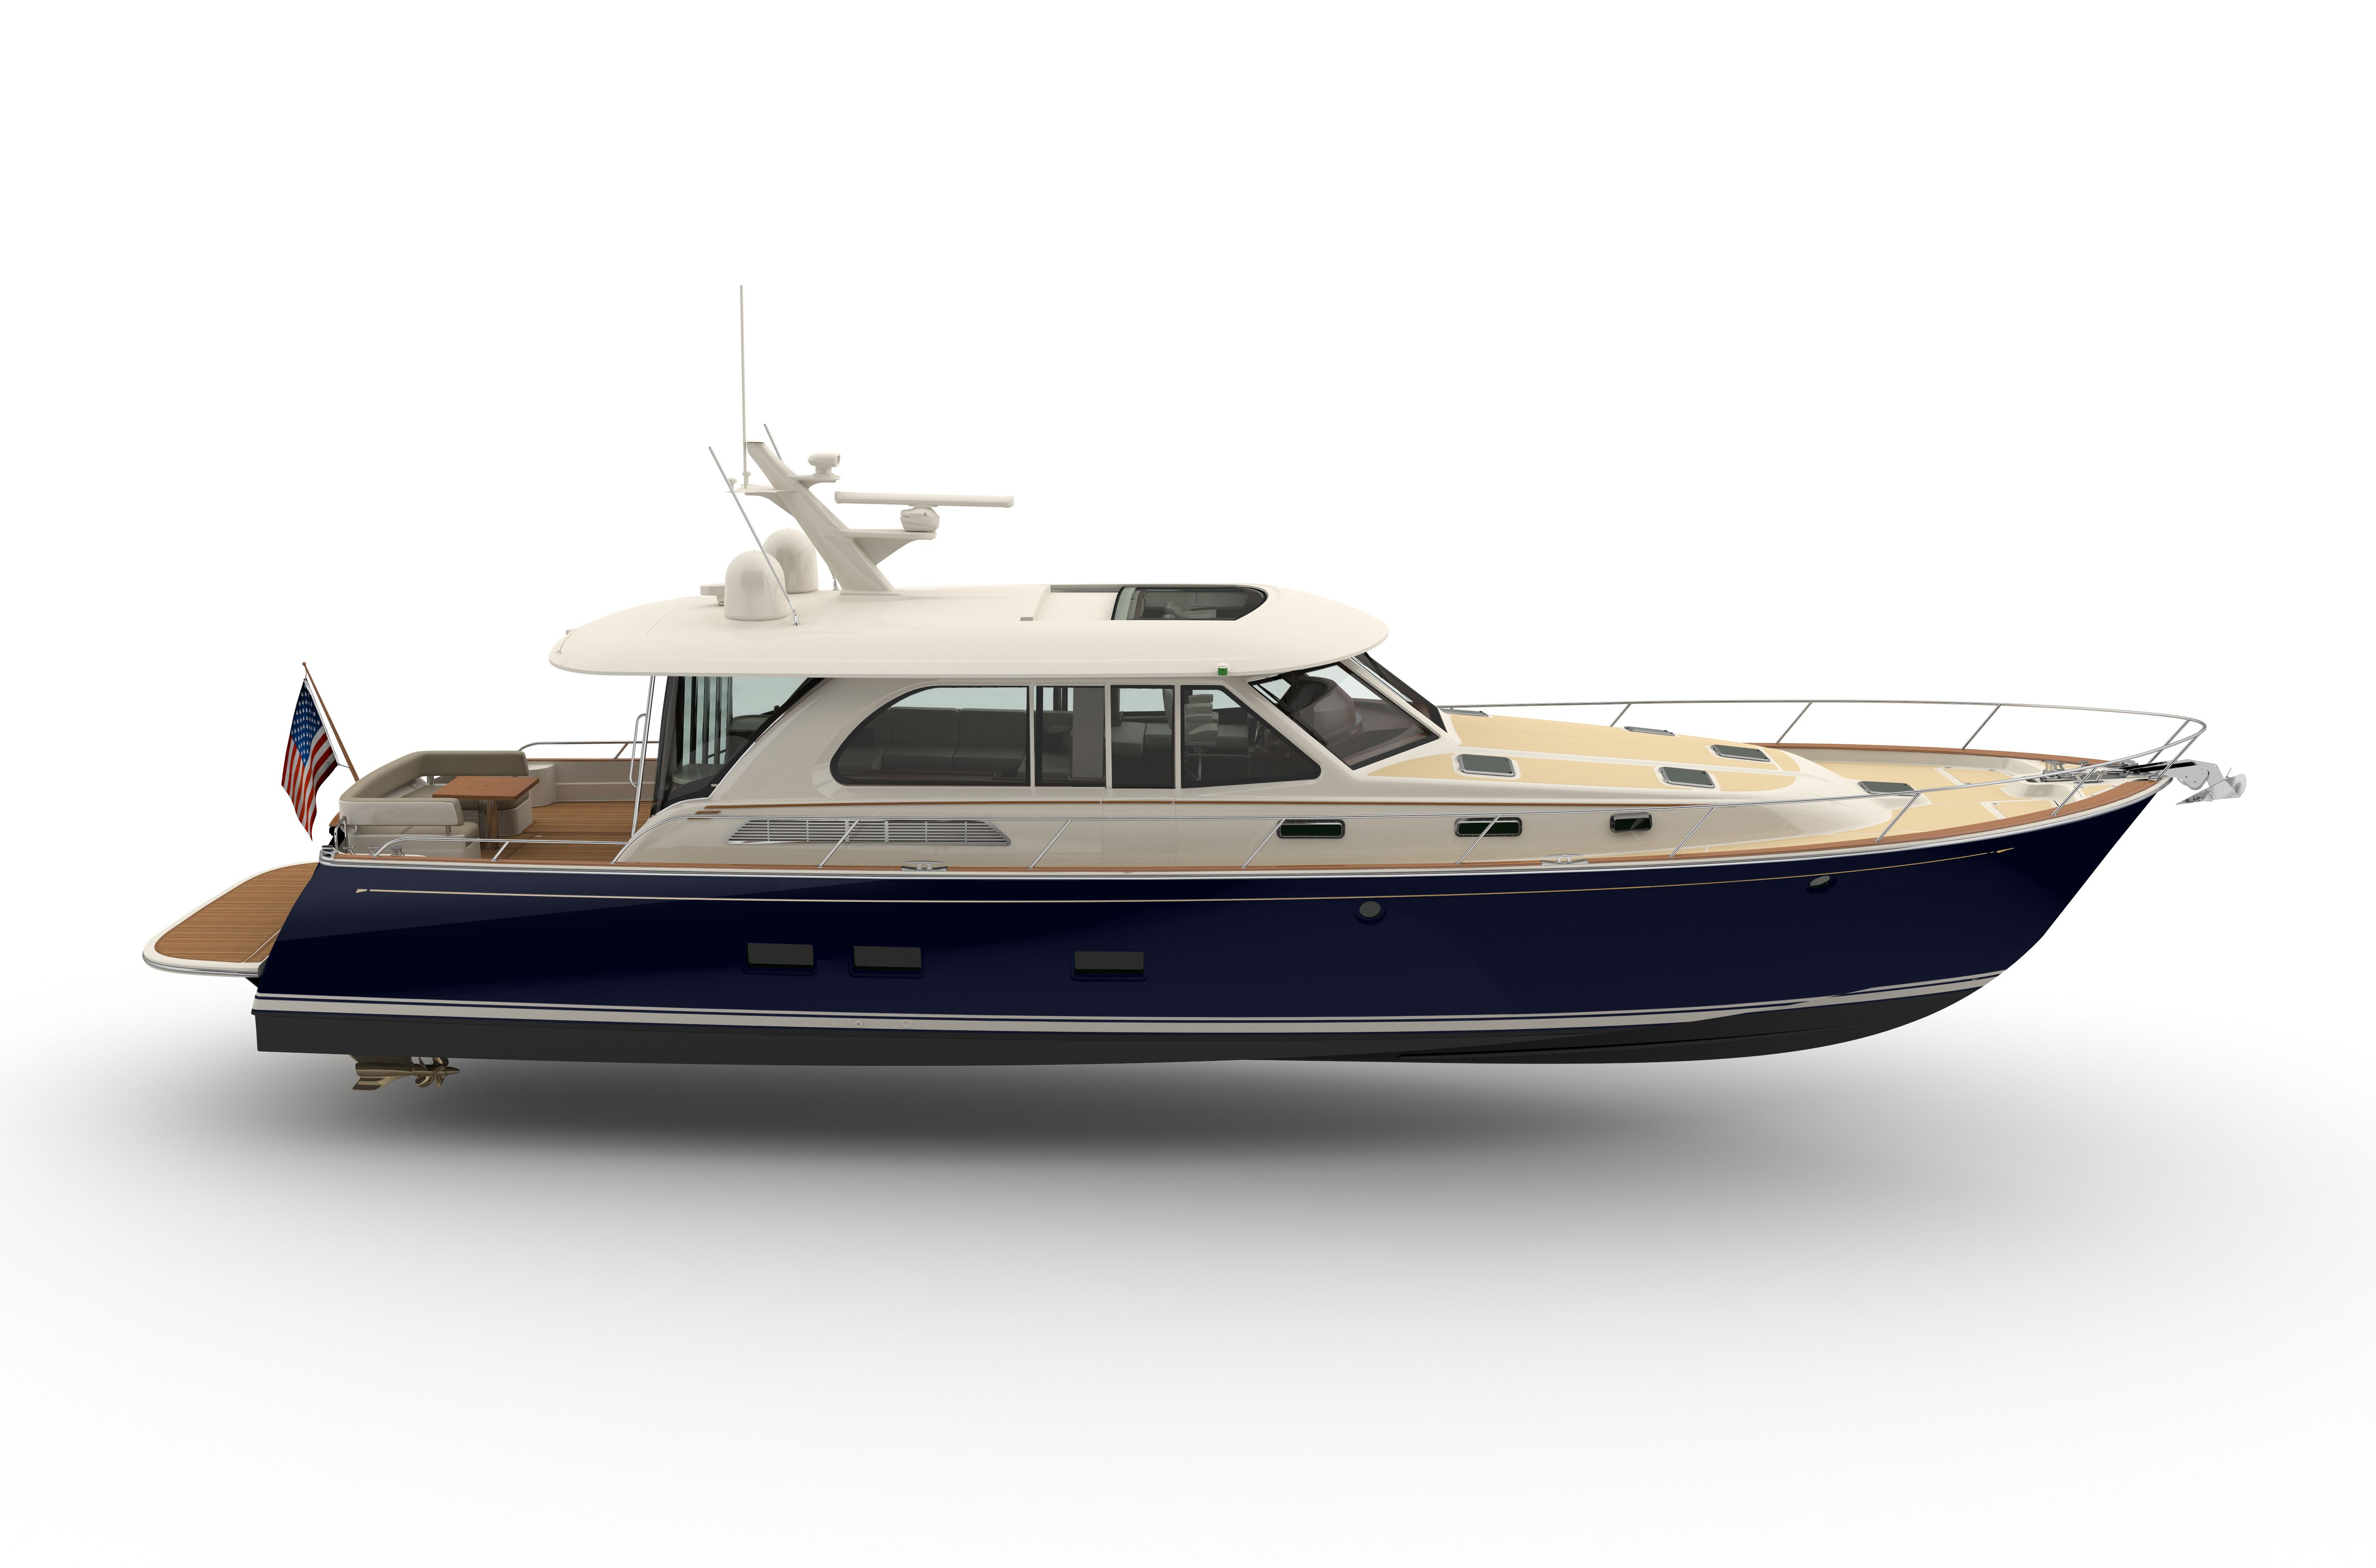 The Classic Color Choice For Sabre Yachts Flag Blue Hull And